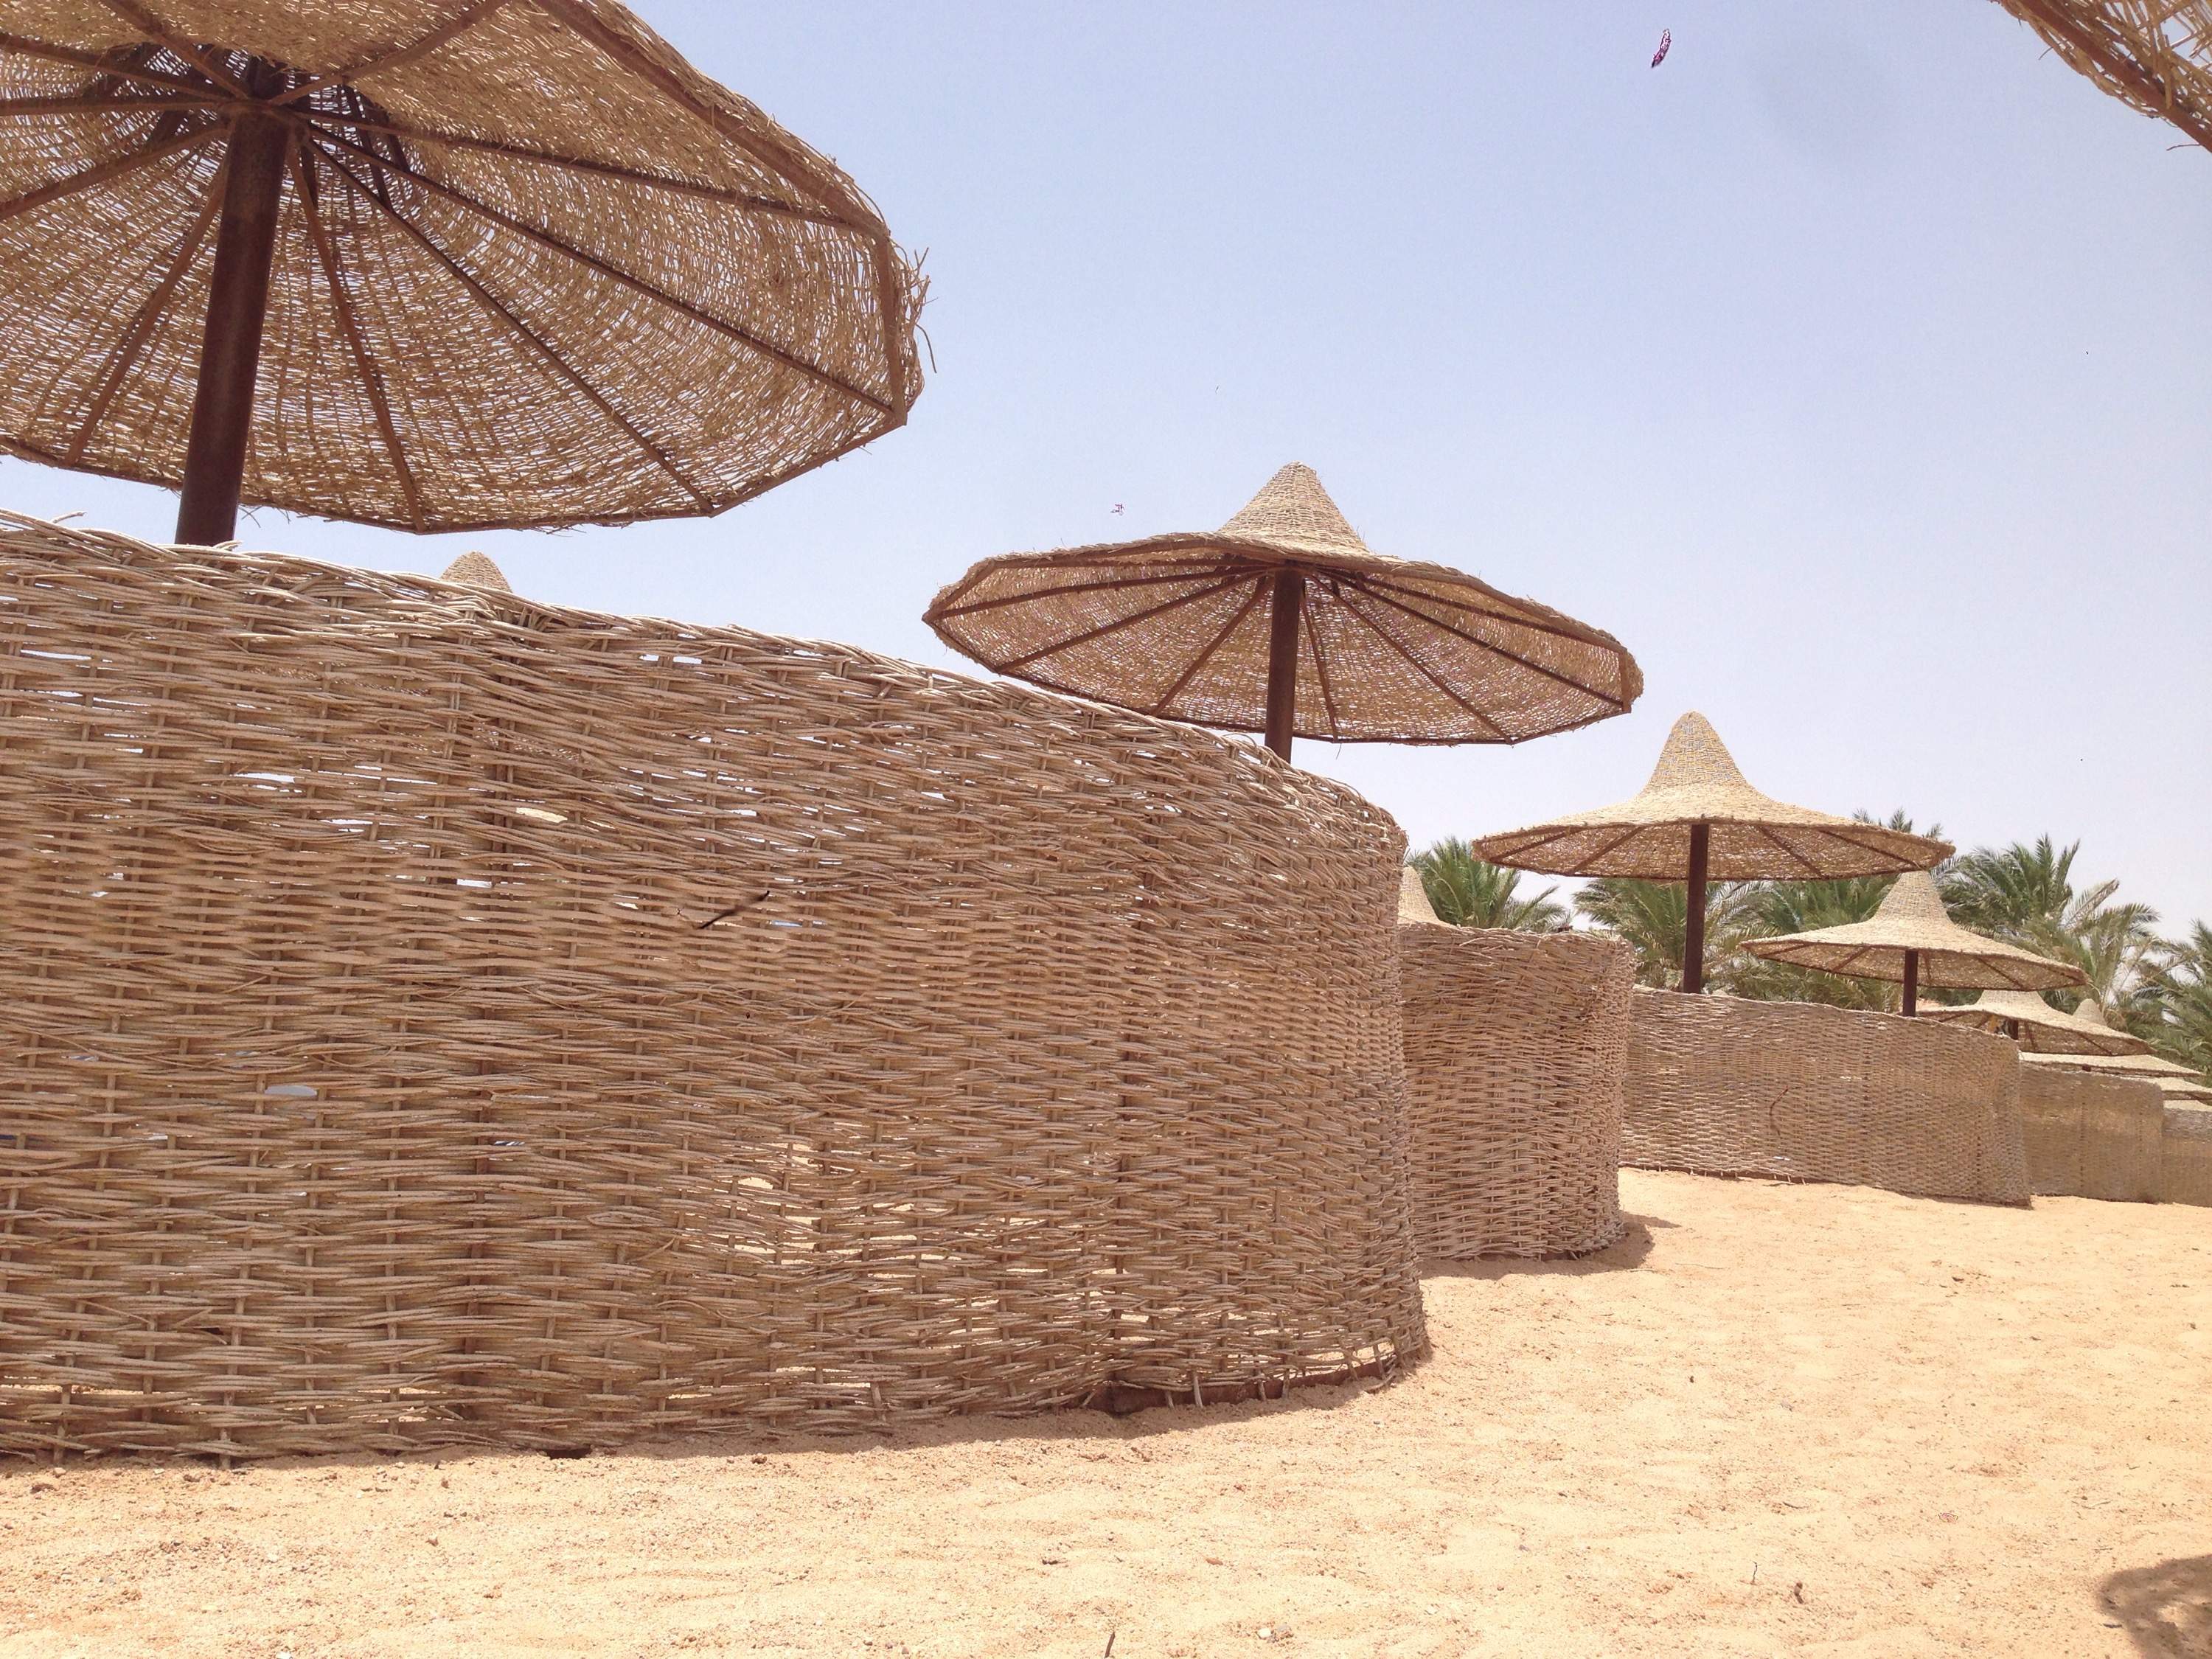 sun umbrellas parasols beach egypt